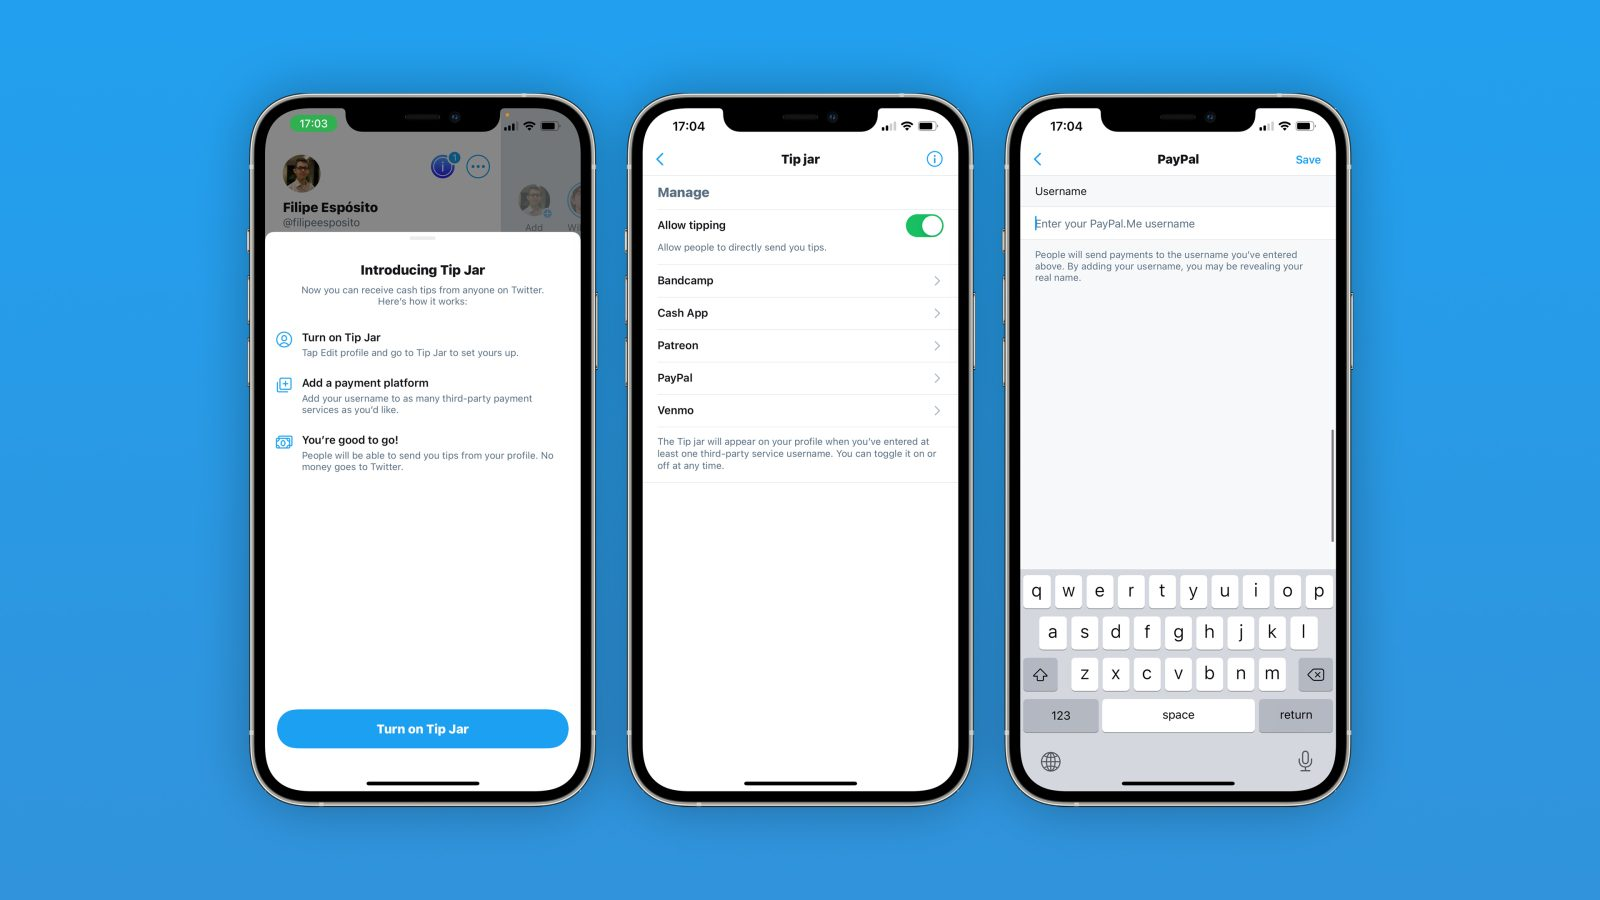 Twitter begins rolling out new ?Tip Jar? feature for paying other users directly